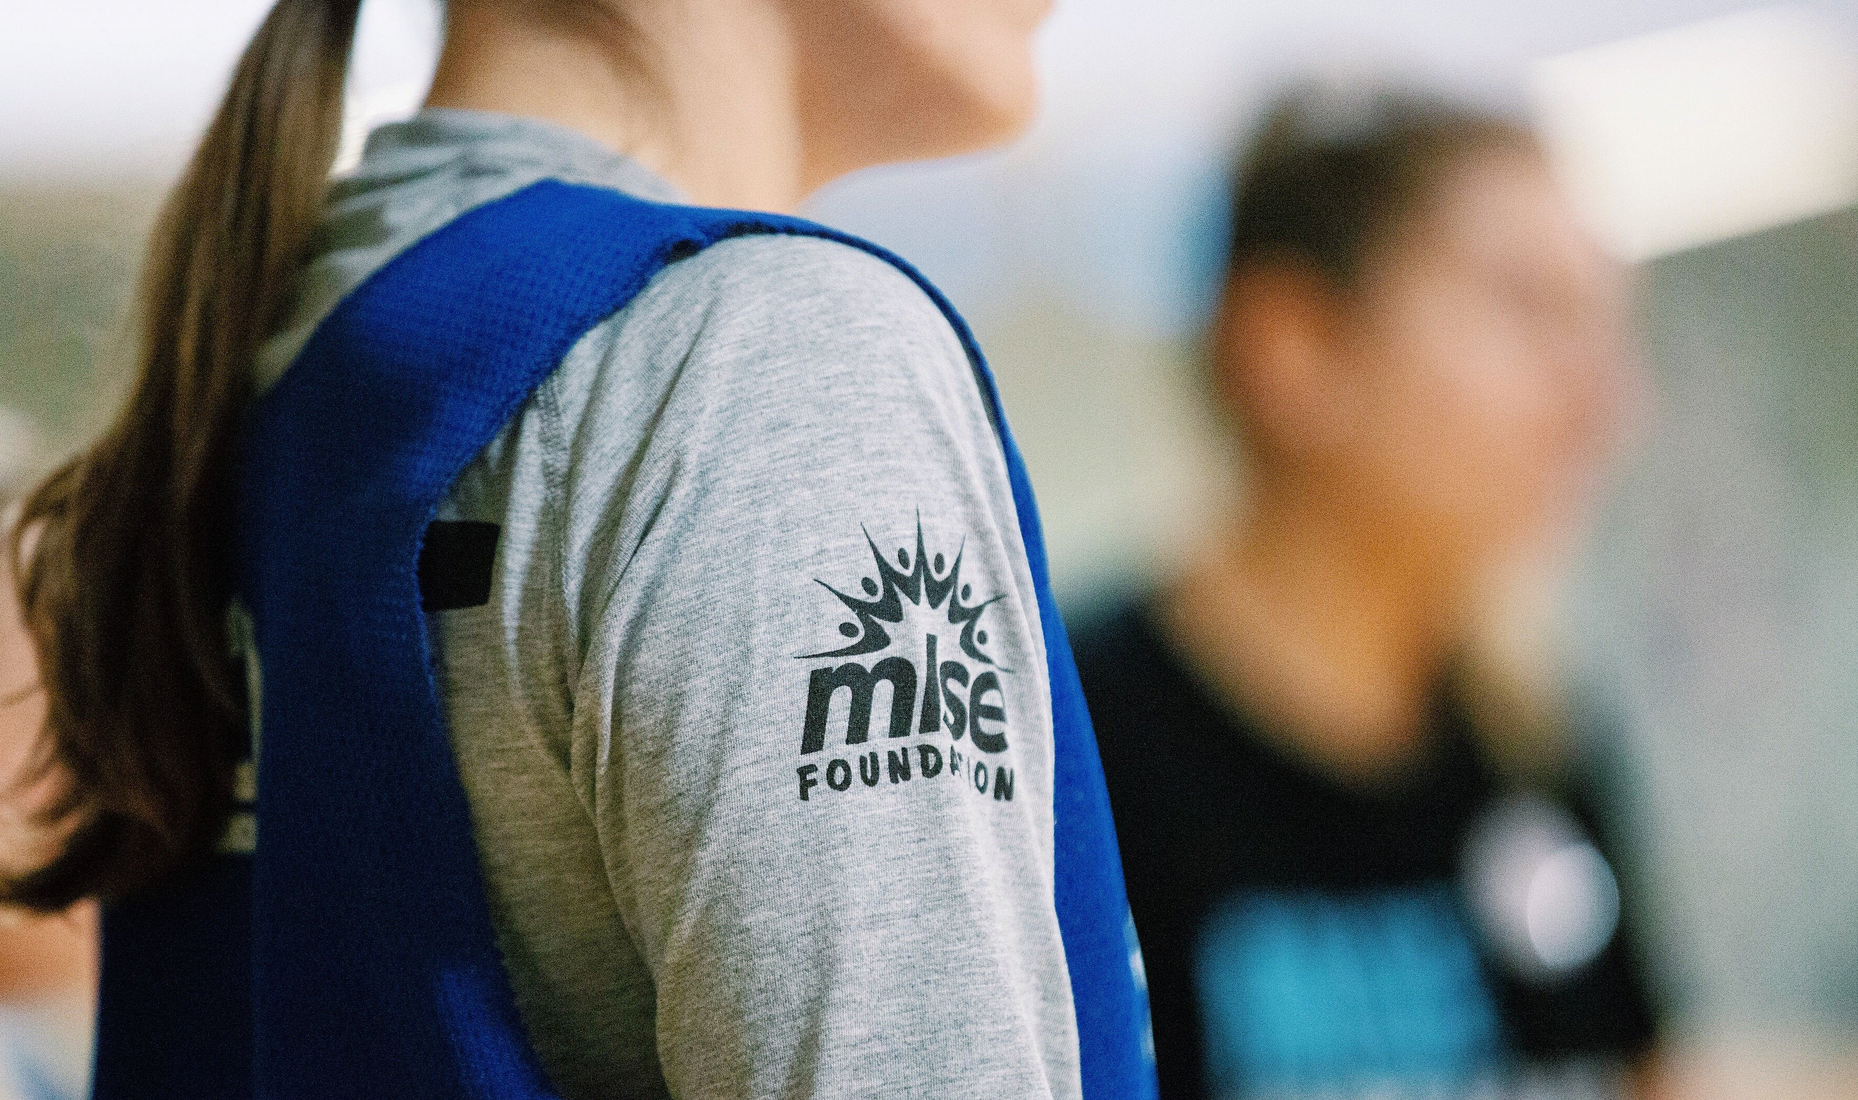 MLSE Foundation launches program to provide GTA youth greater access to sport